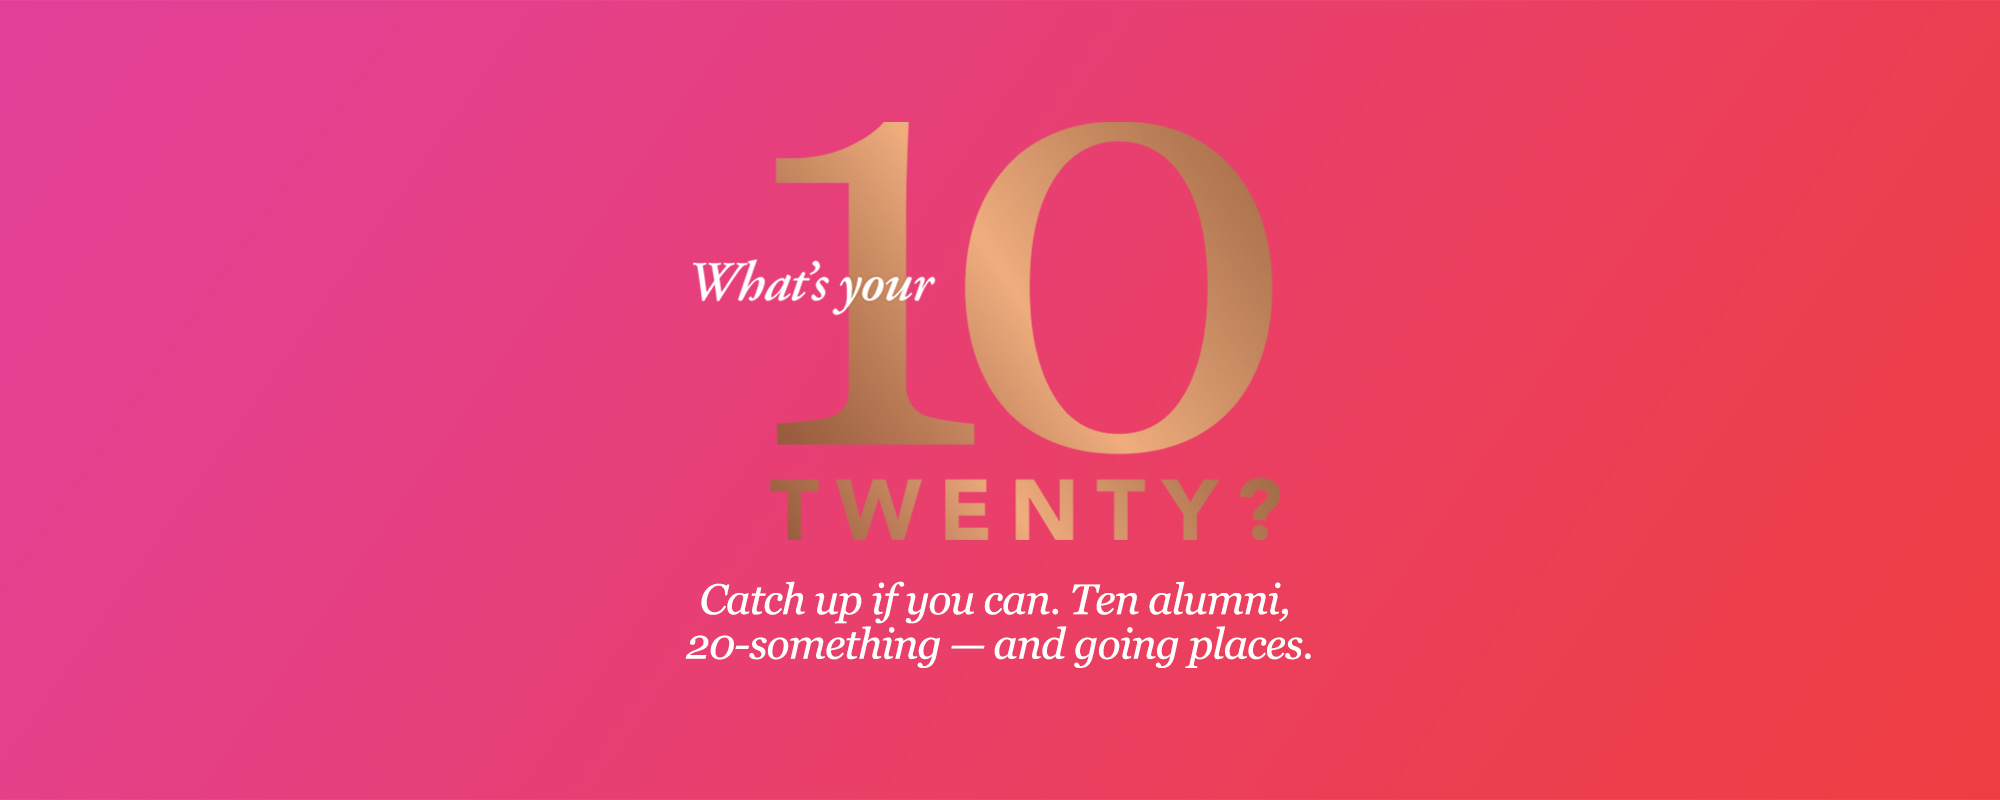 Luminus-Online banners-Whats your 10-20-2000x800px